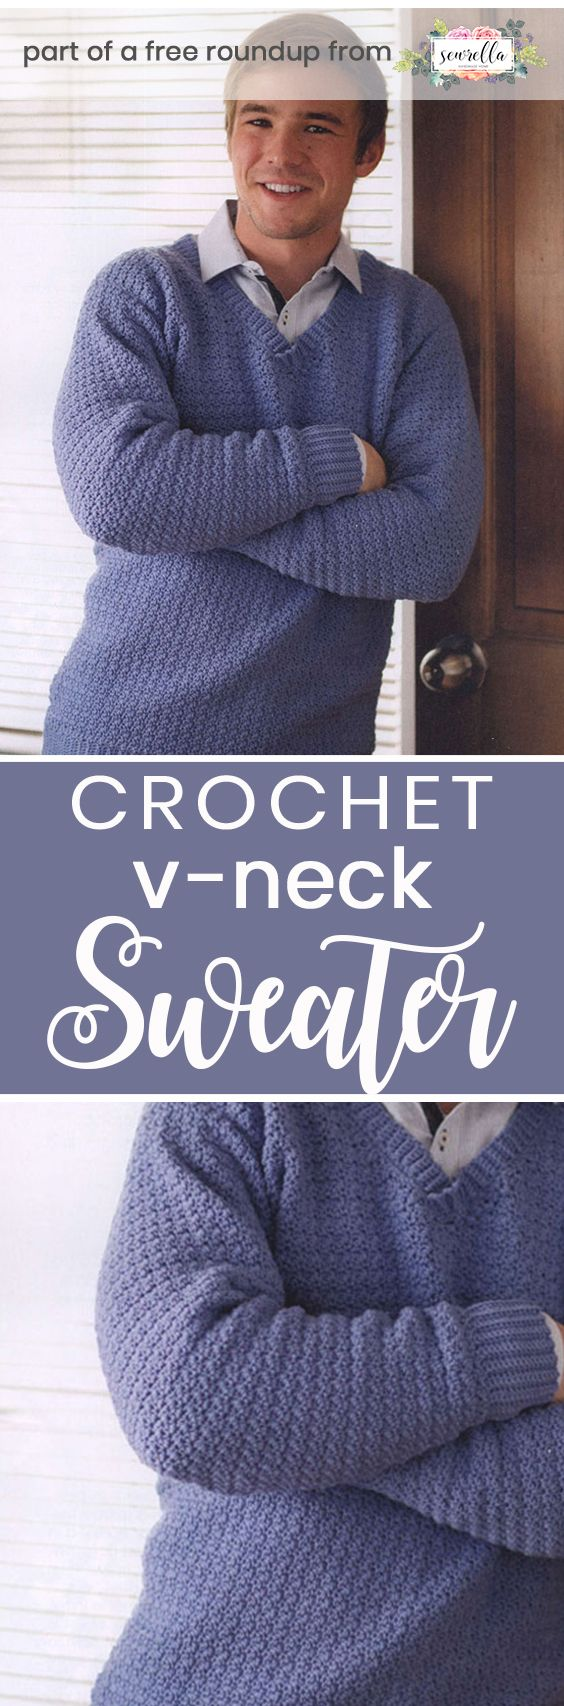 1a940b514db6b4 Get the free crochet pattern for this Crochet Mens V-Neck Pullover Sweater  from Knitted Patterns featured in my husband-approved crochet sweaters for  men ...